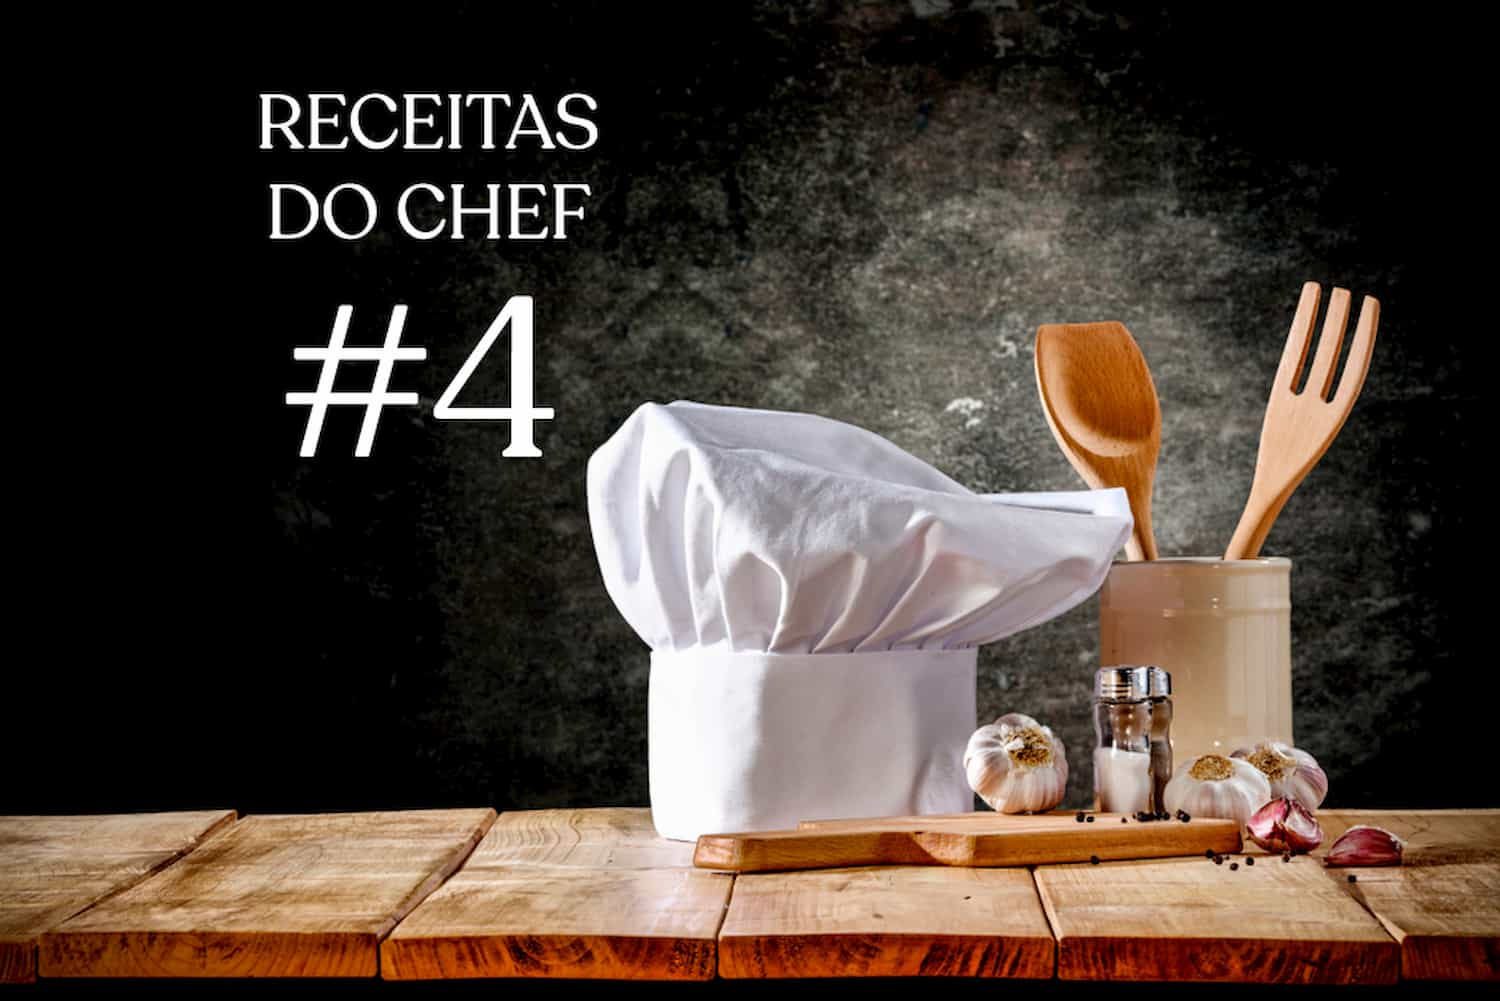 Receitas do chef #4 - Sunomono